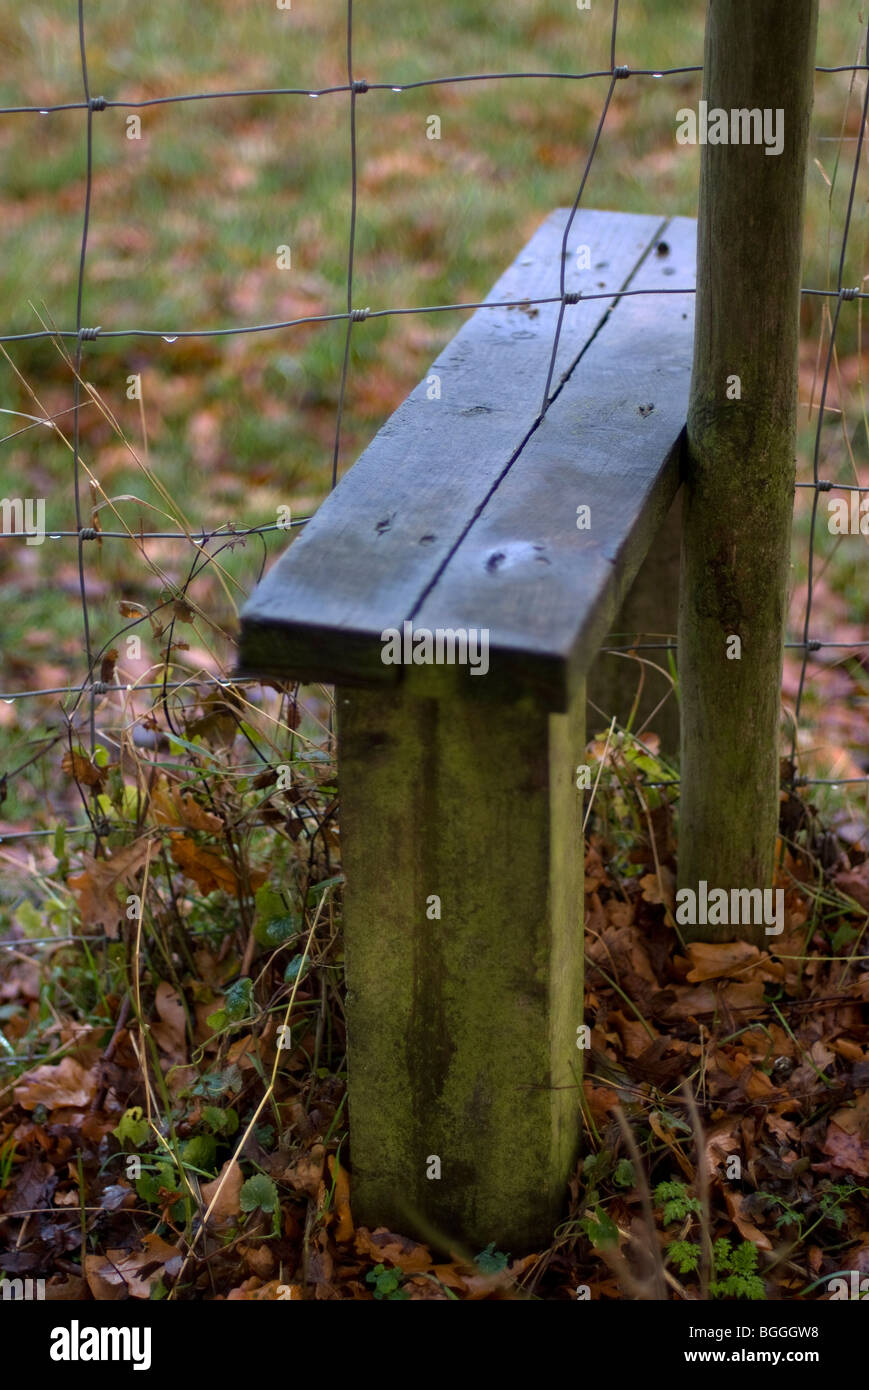 Pig Wire Fencing | Stile Over Pig Wire Fence Stock Photo 27409348 Alamy